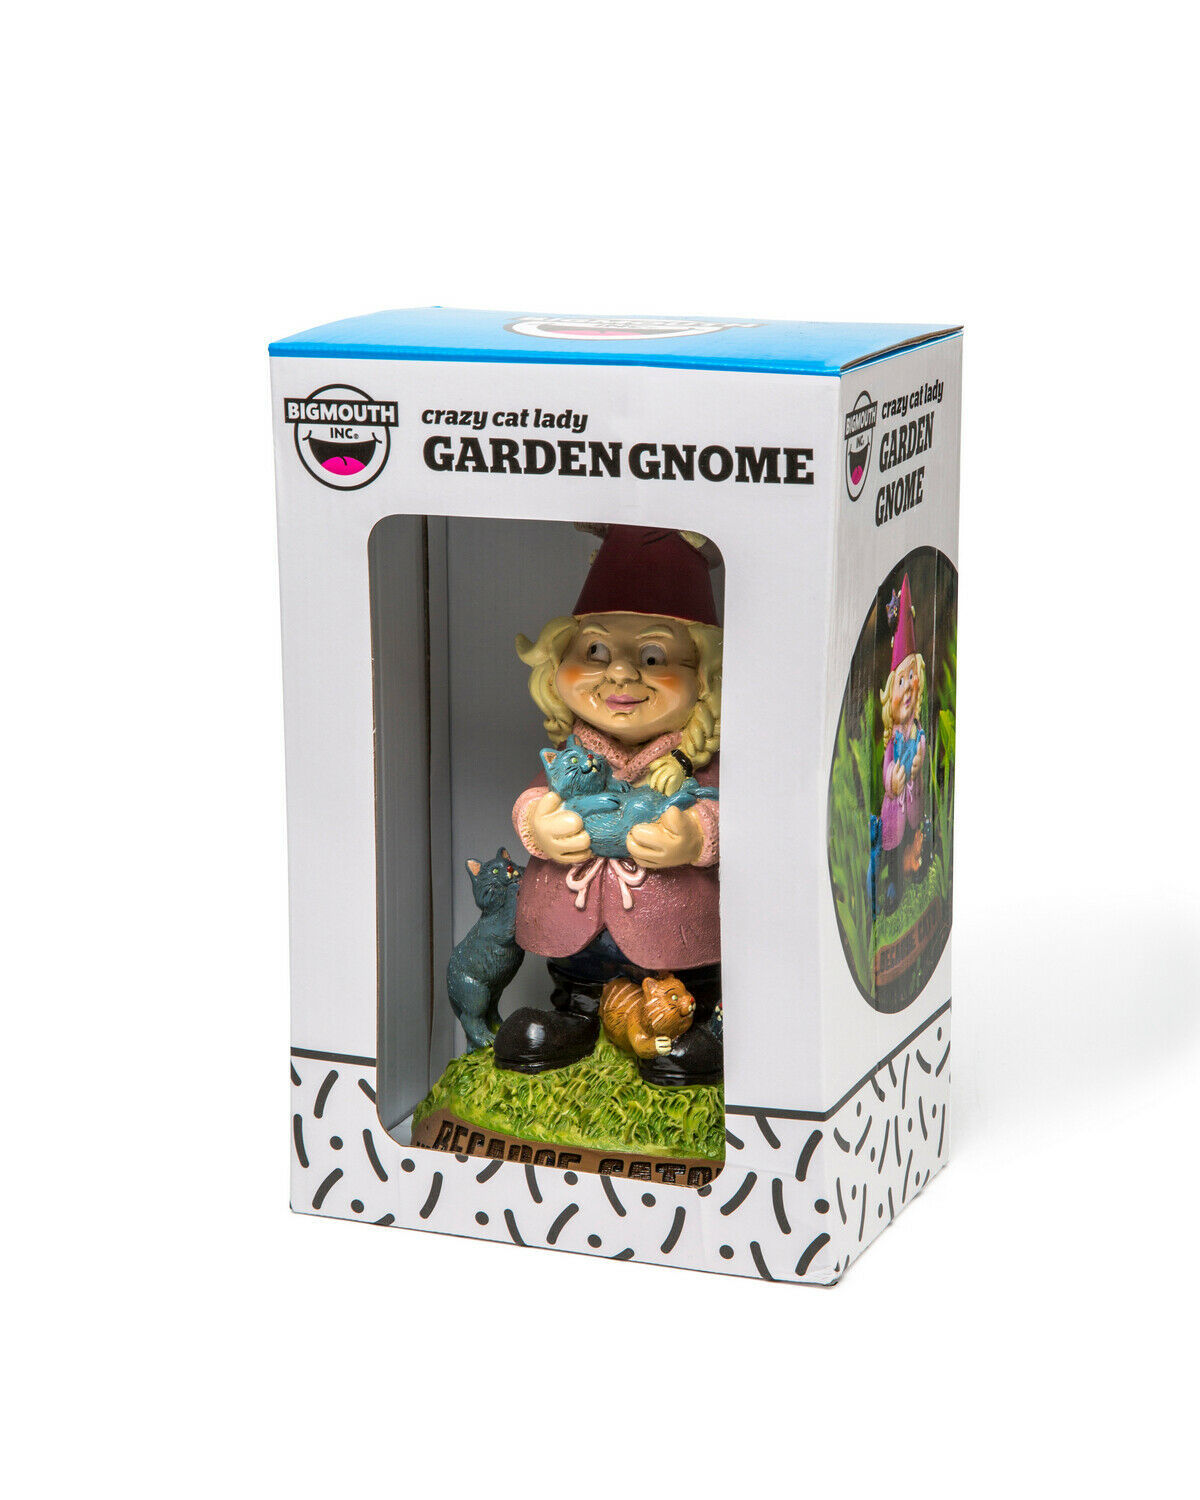 BigMouth – The Crazy Cat Lady Garden Gnome image